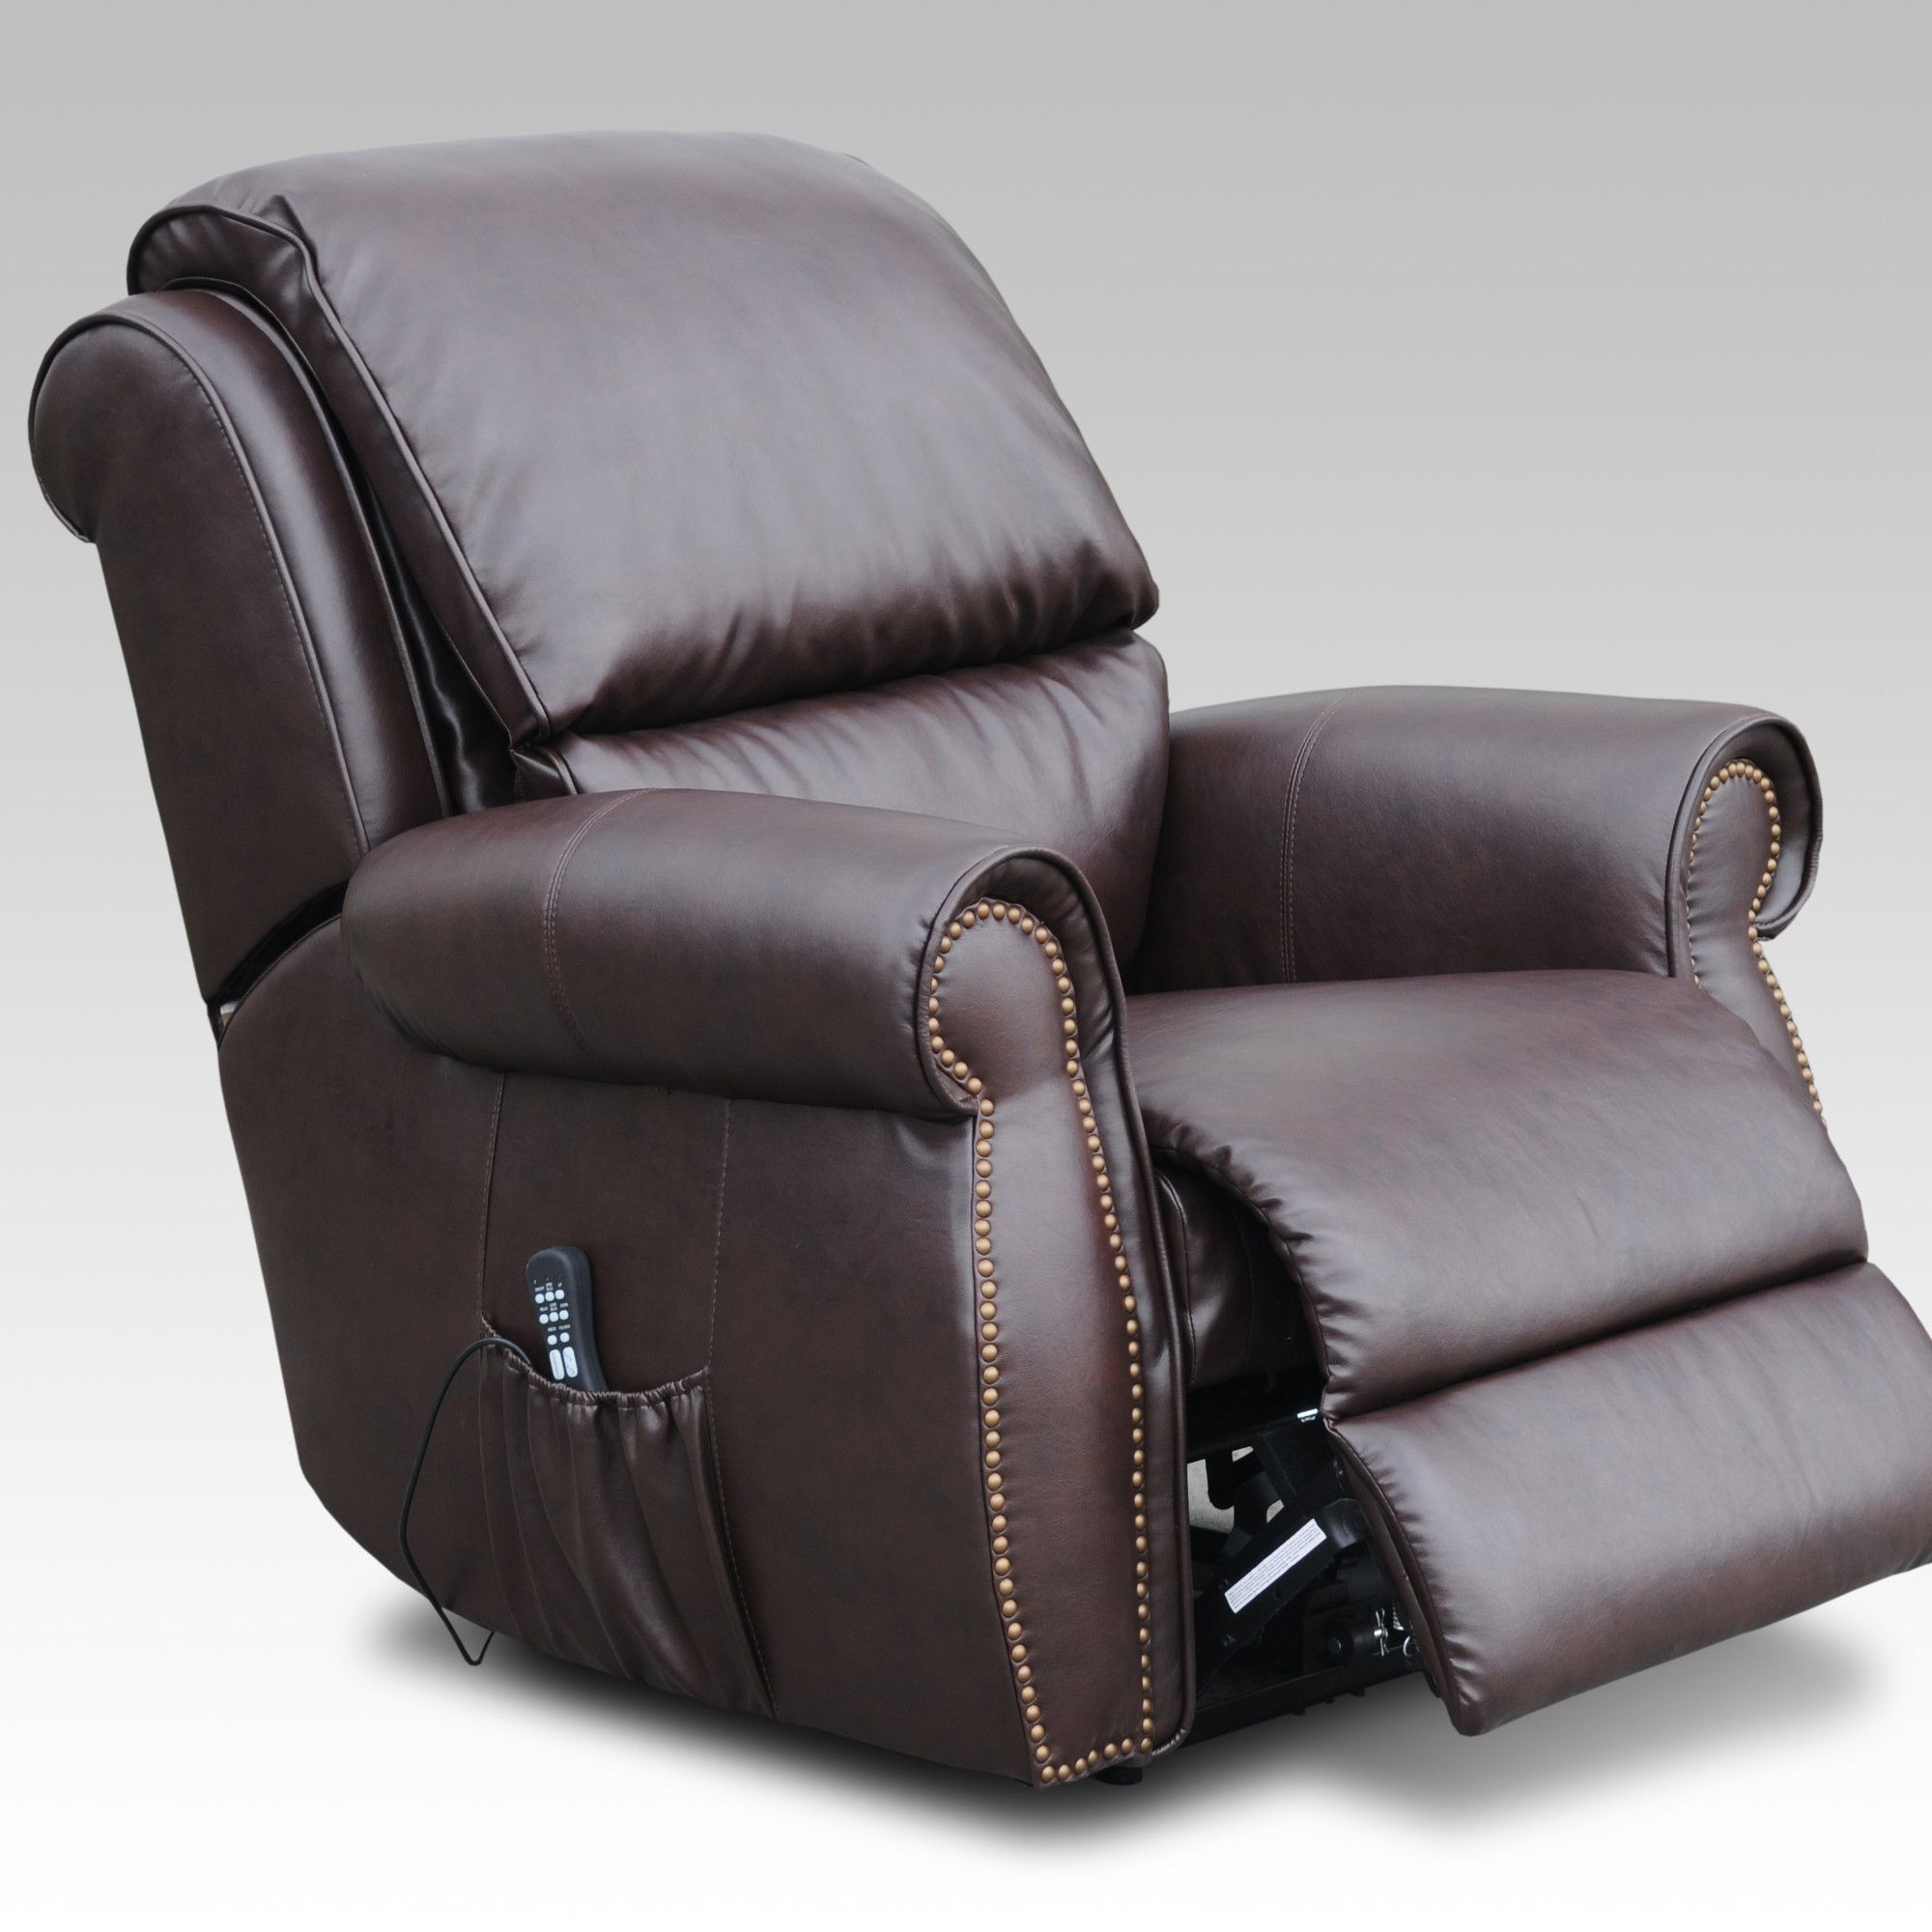 chair comparisons furniture massage of and best style fixed concept astonishing image cushionsreview ijoy sharper